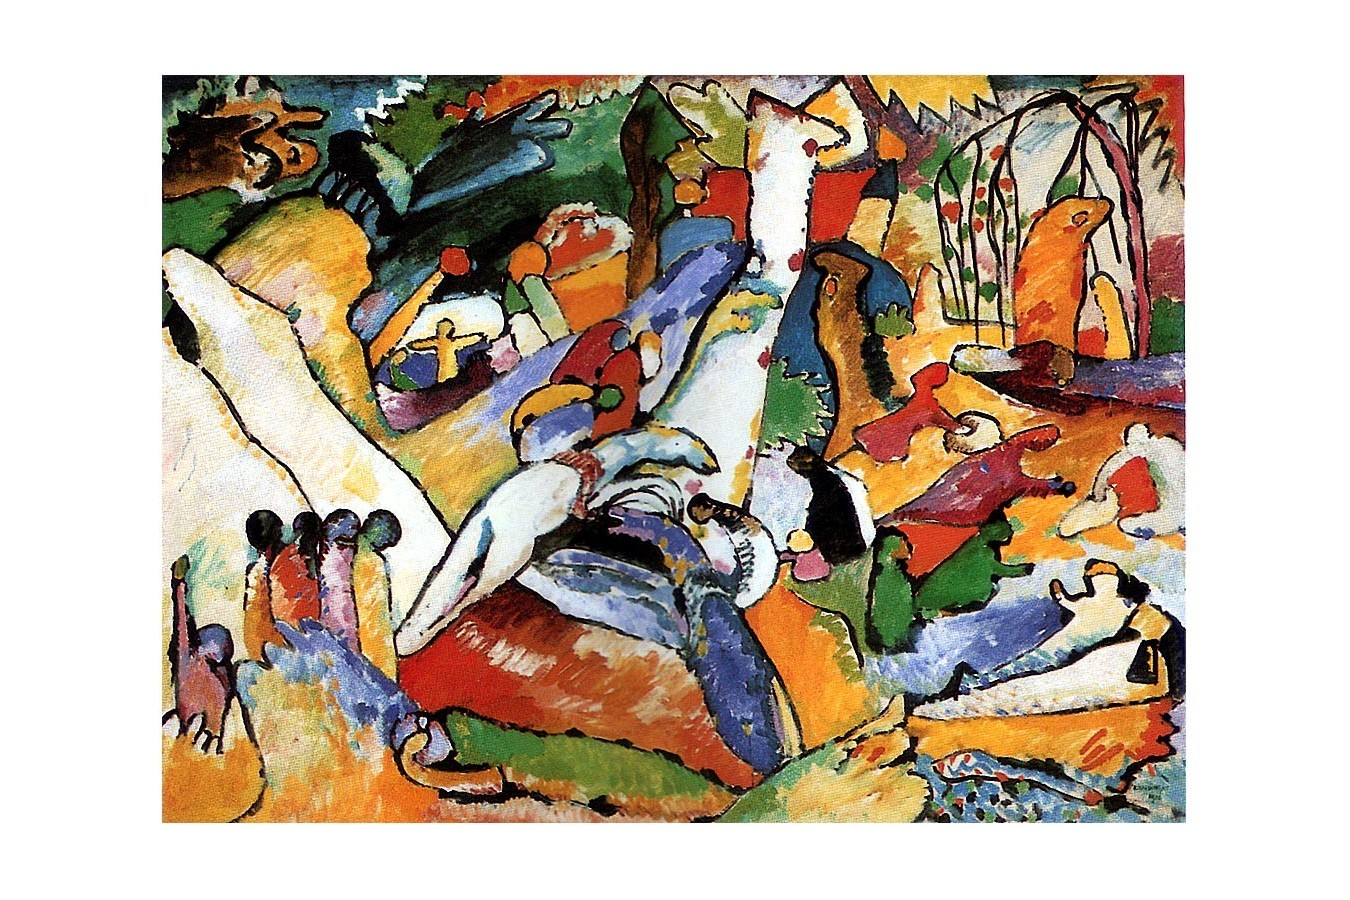 """Puzzle D-Toys - Vassily Kandinsky: Sketch for """"Composition II"""" / study, 1.000 piese (72849-1)"""